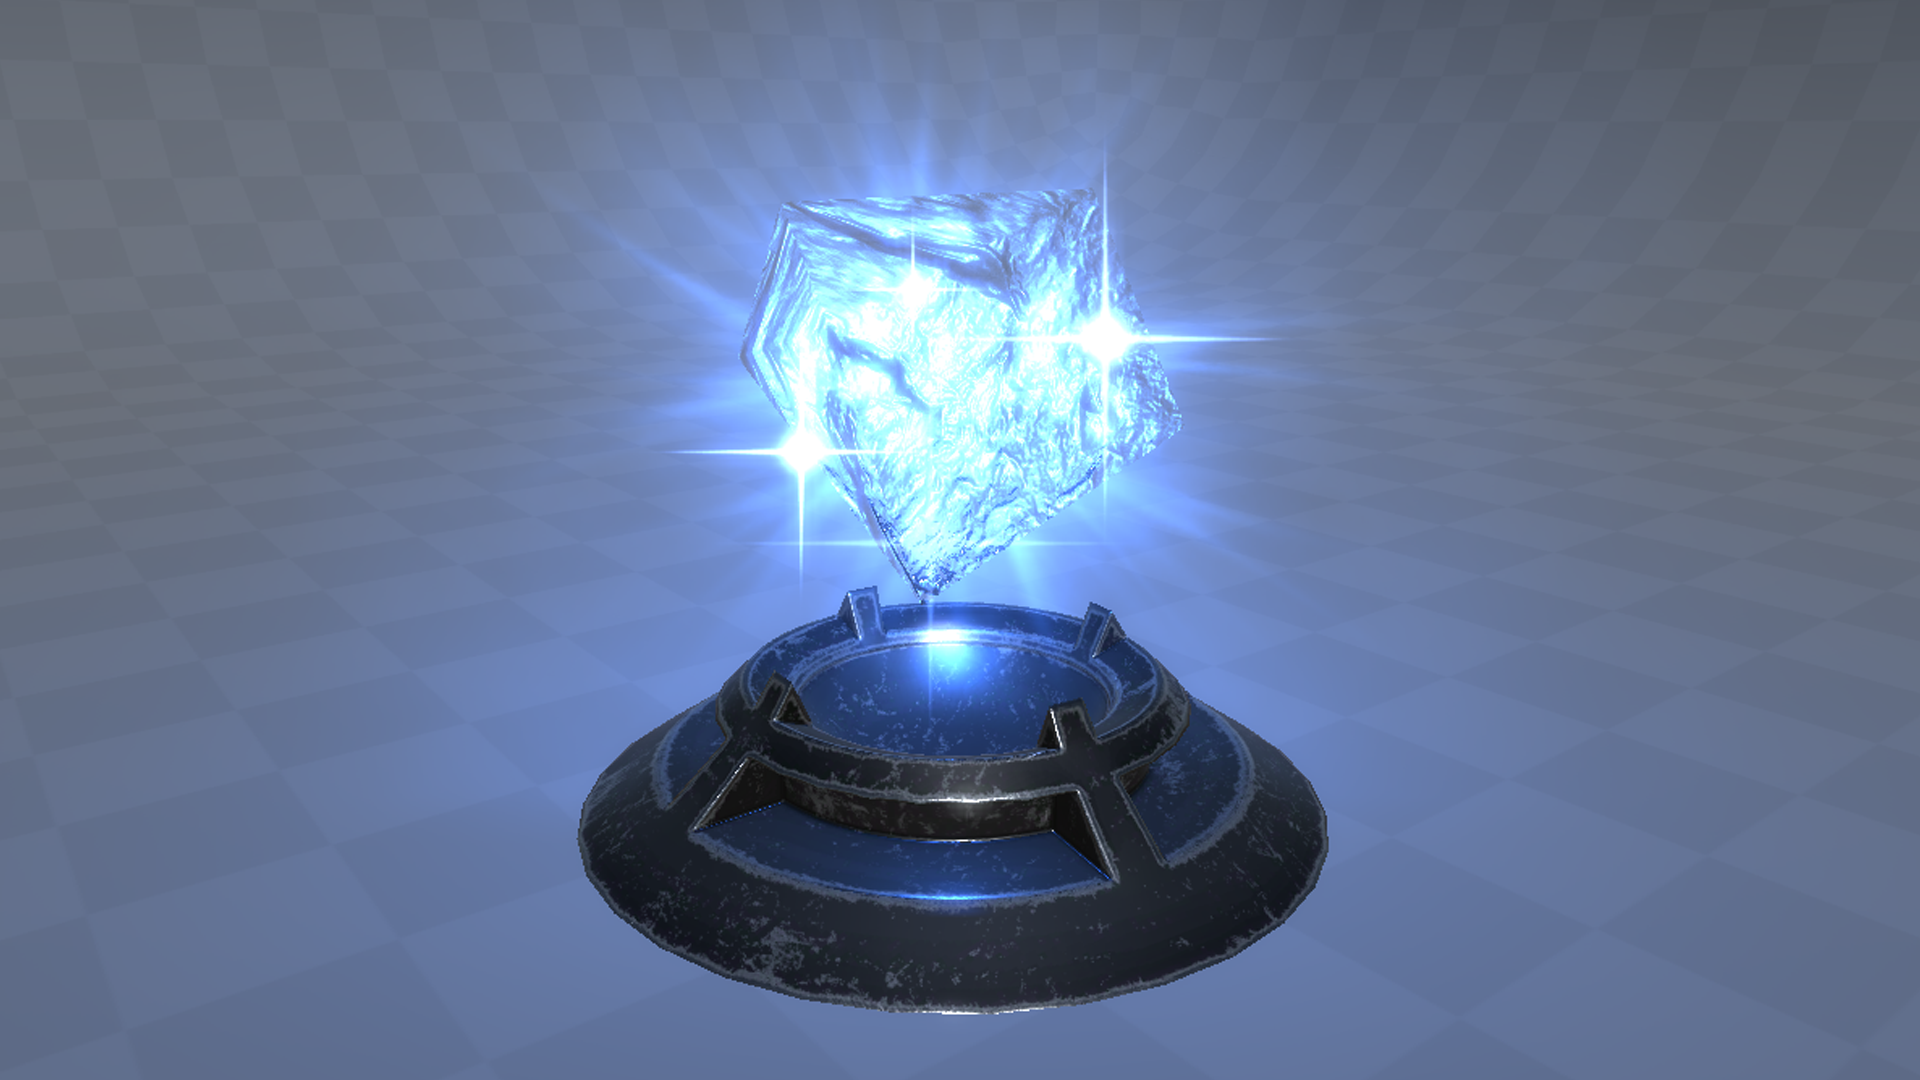 Guide how to create ice magic artifact in Unity 2018.1